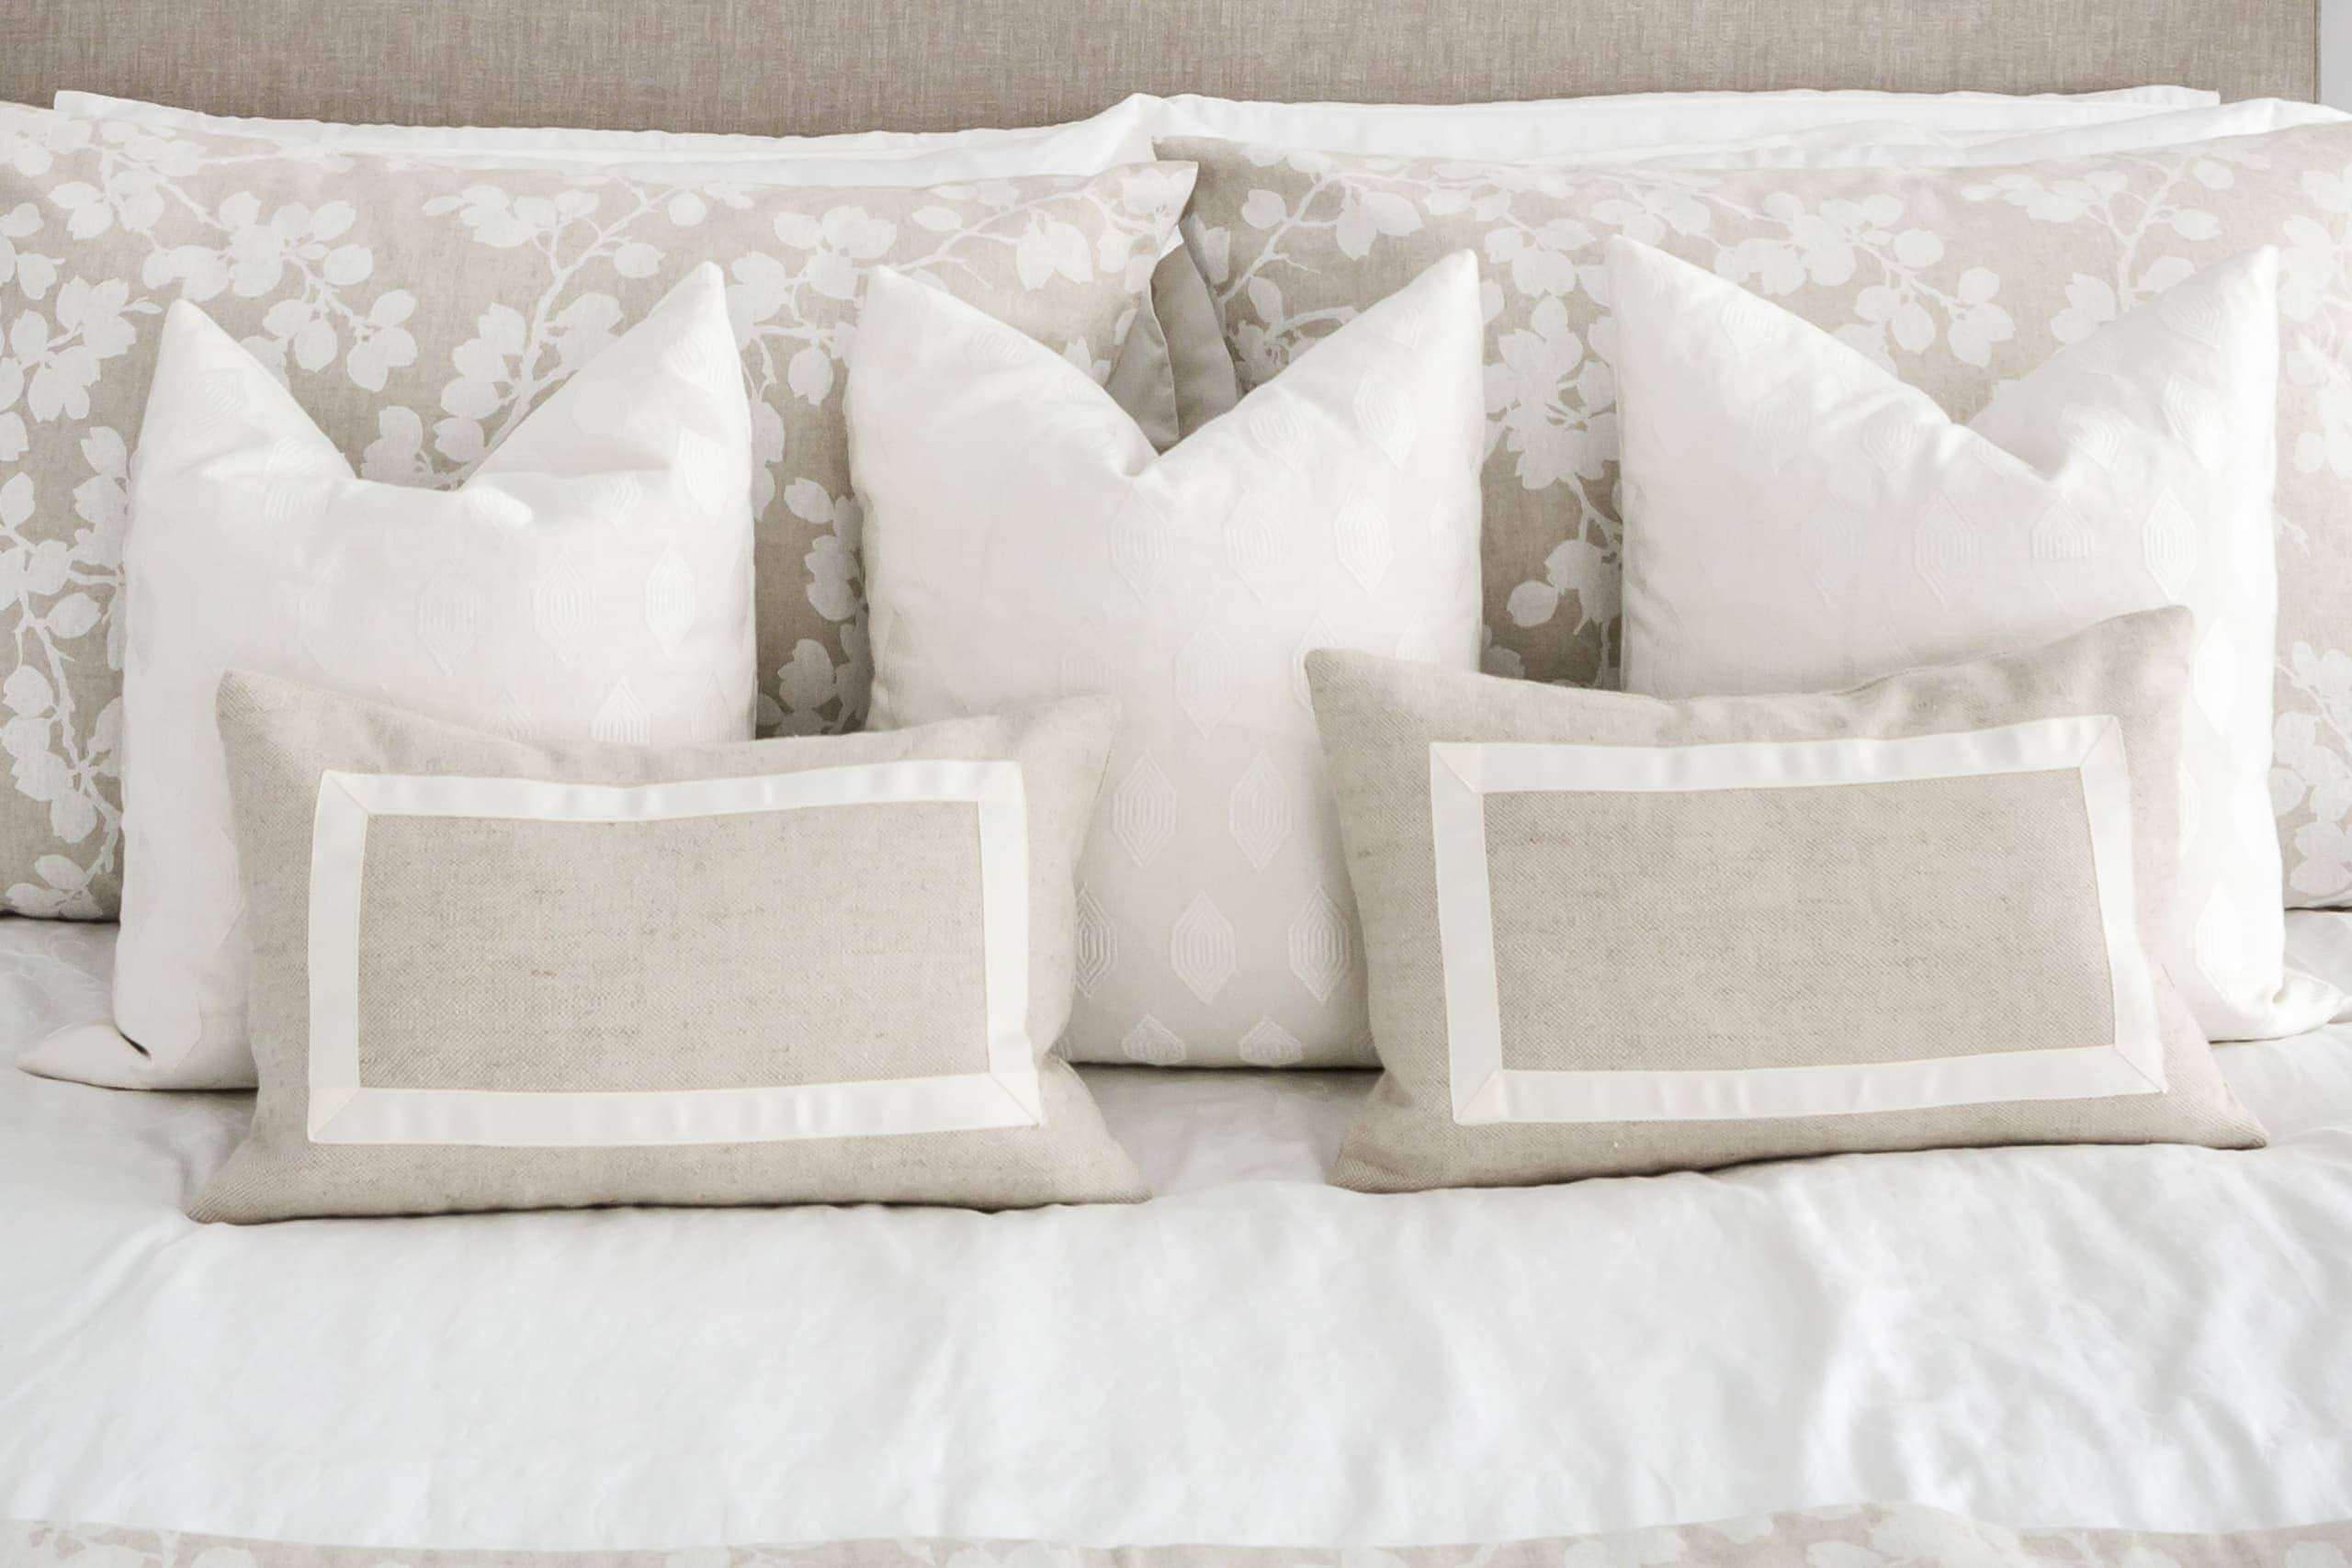 Array of pillows colored beige and white